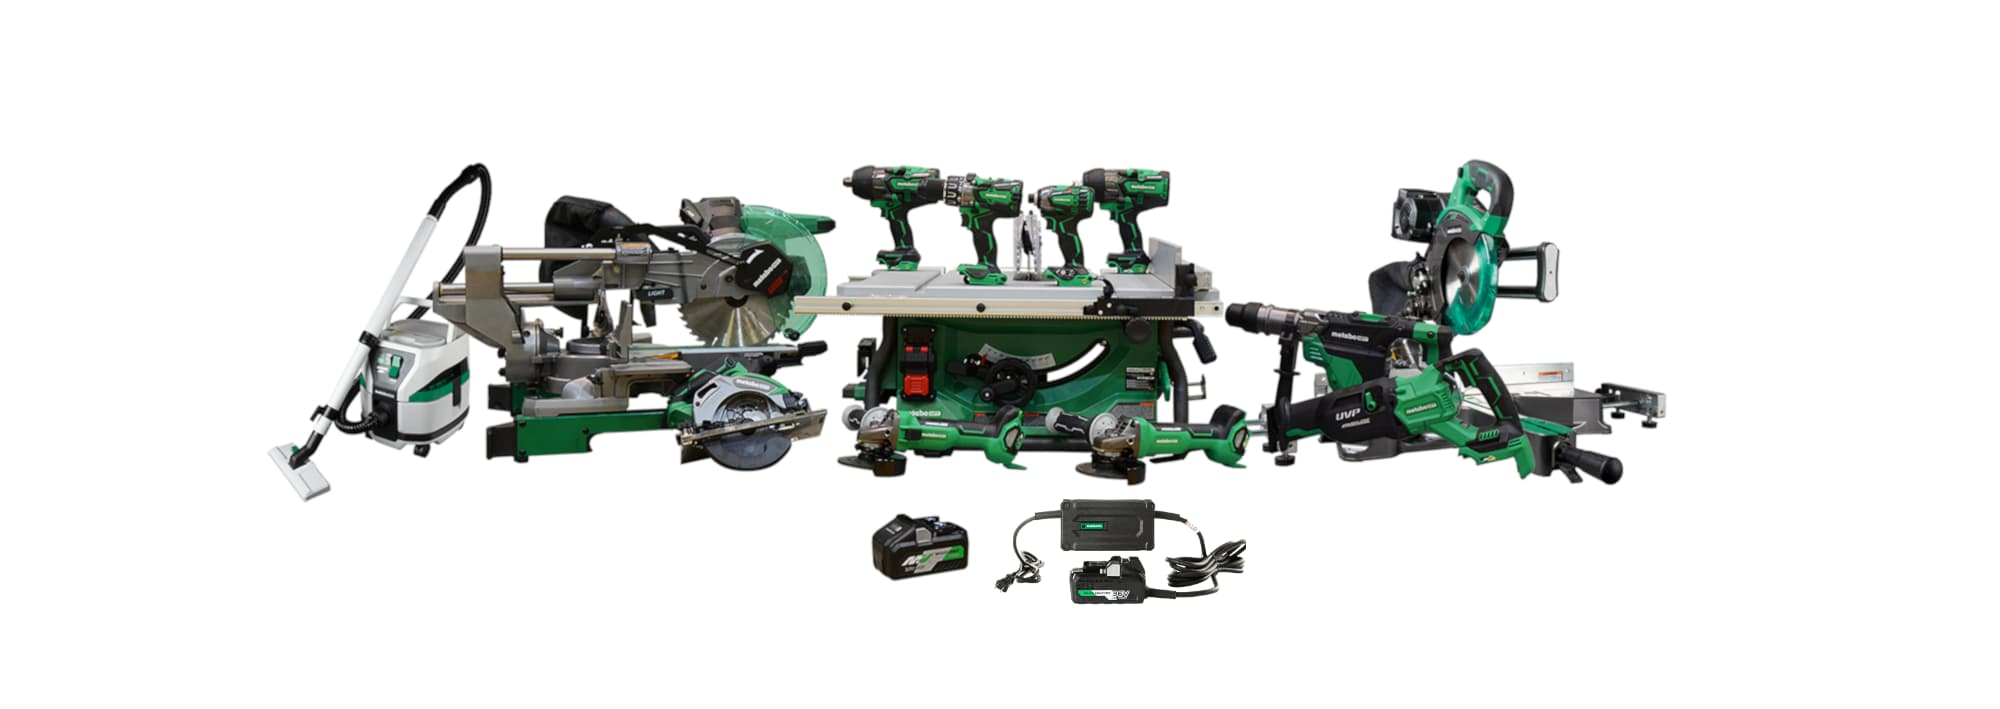 Metabo HPT Multivolt Family image